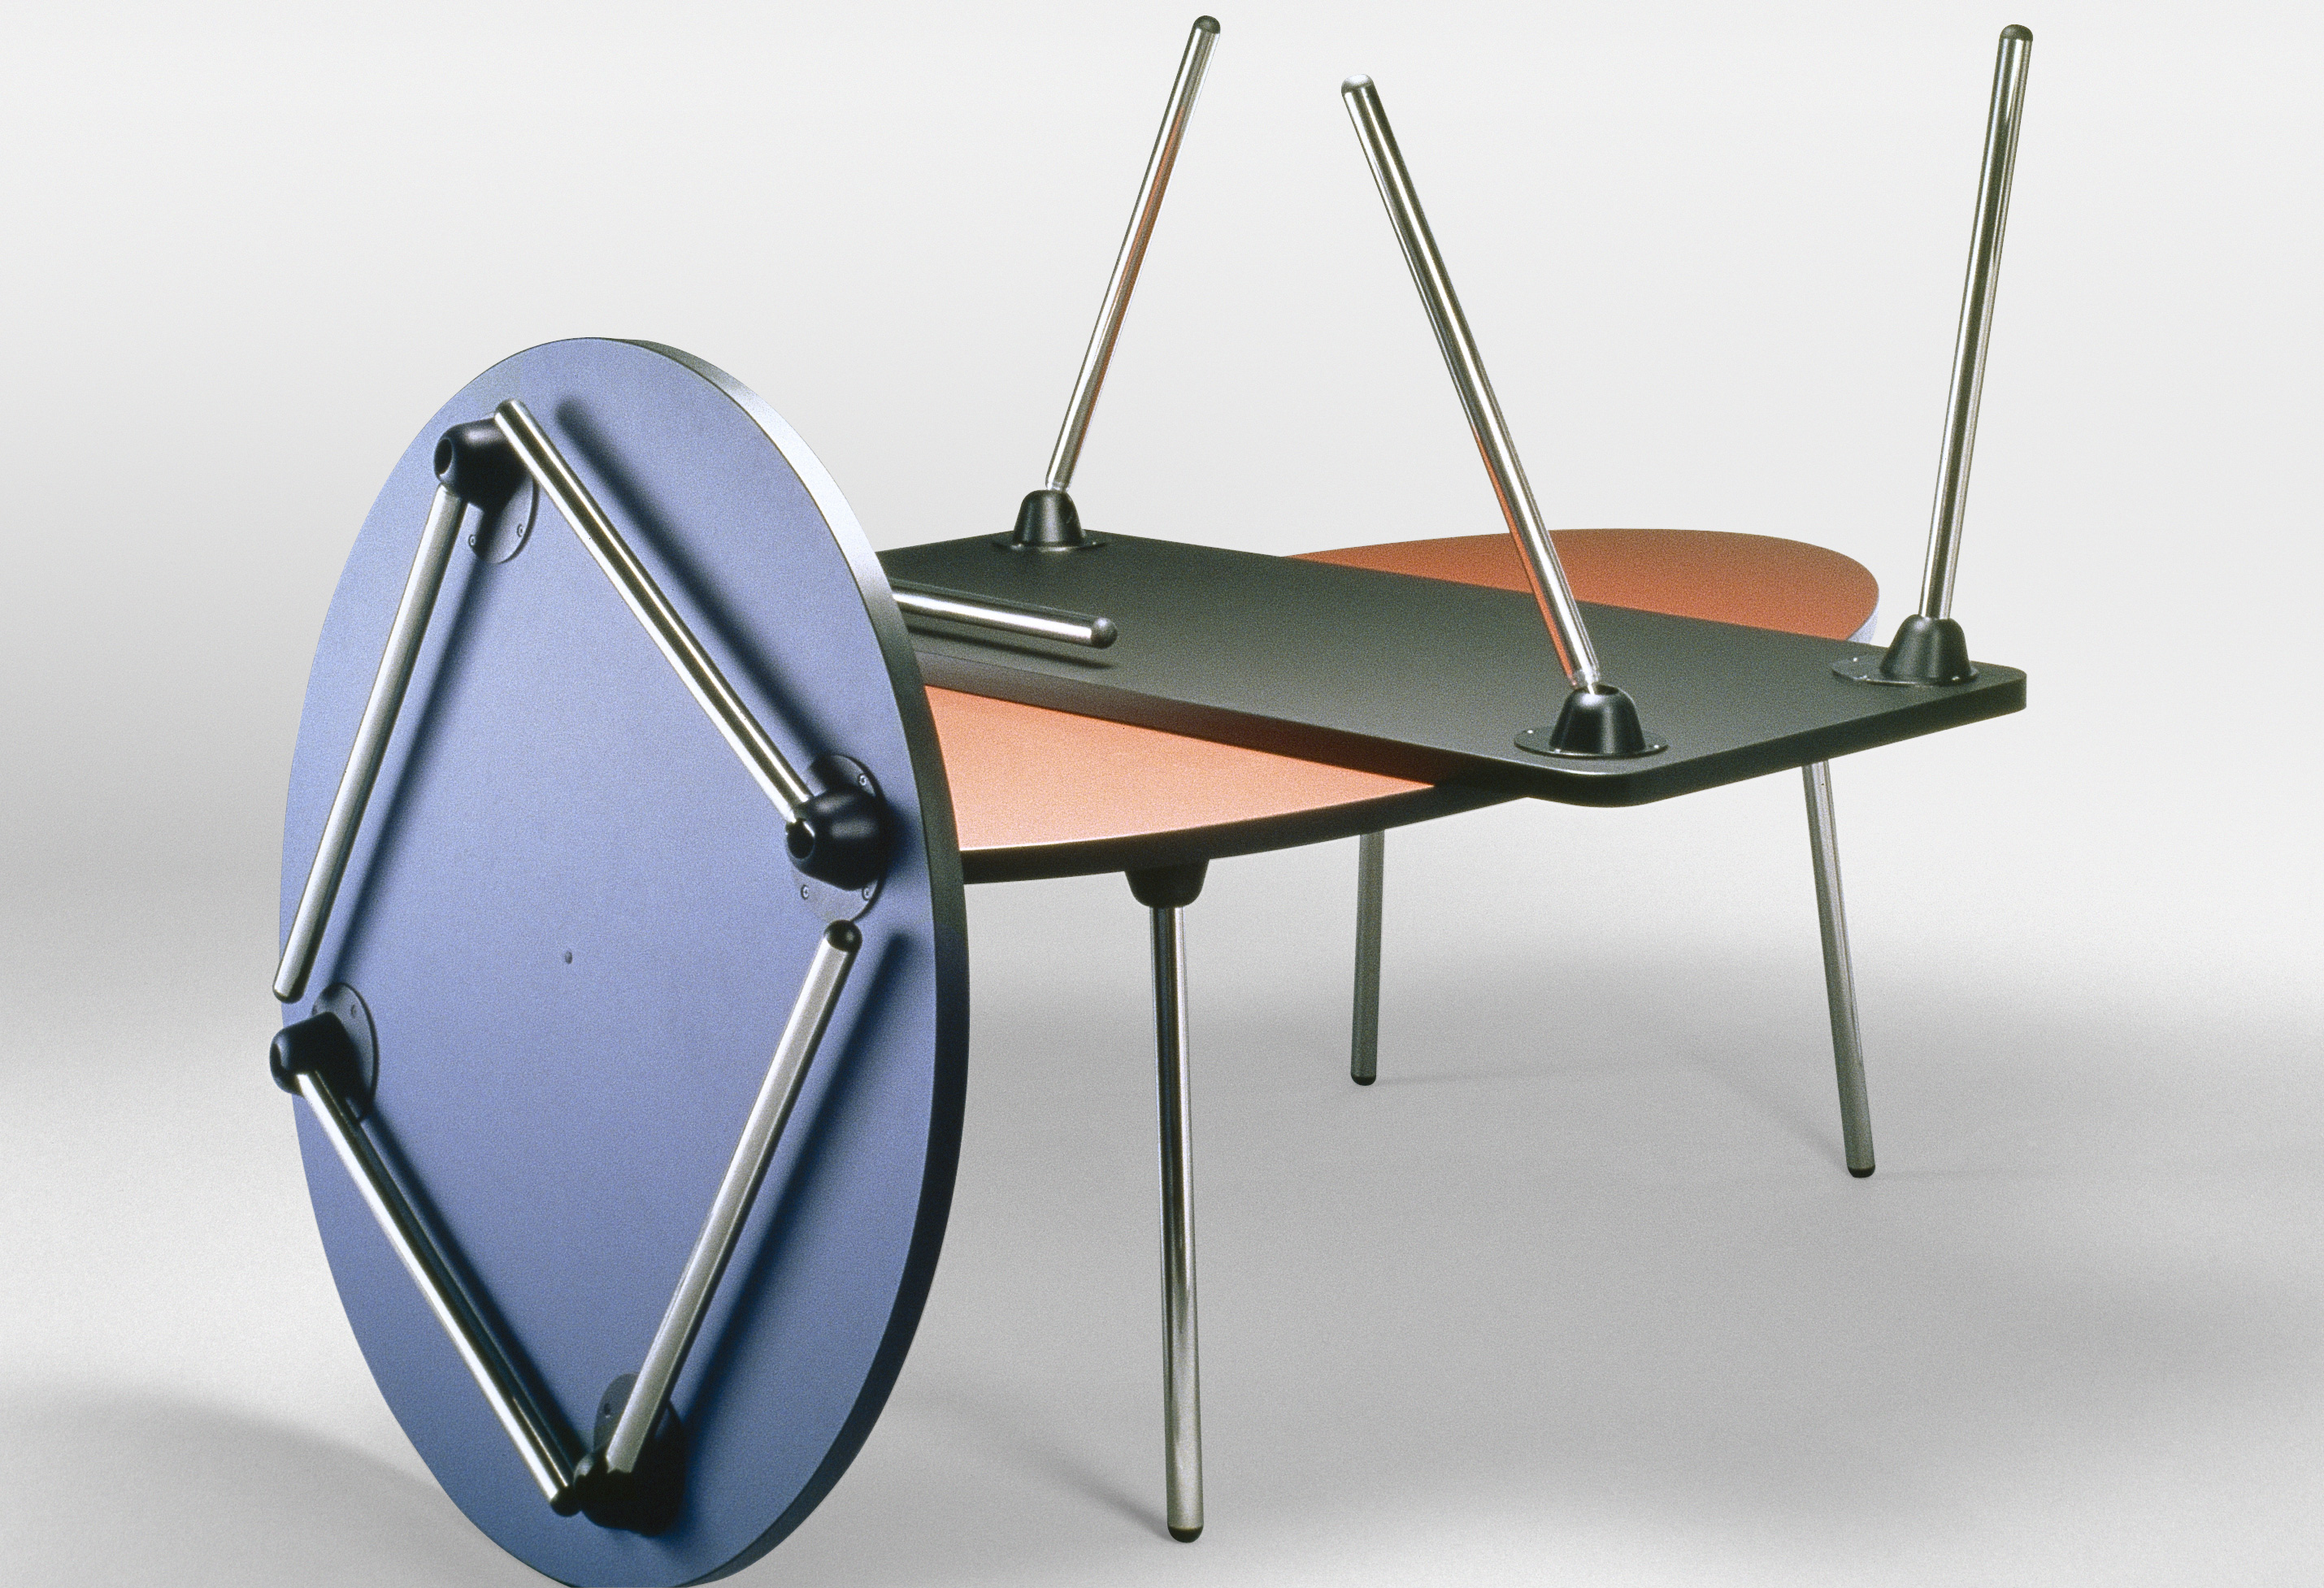 Ginbande Design Wogg 16 Folding Table